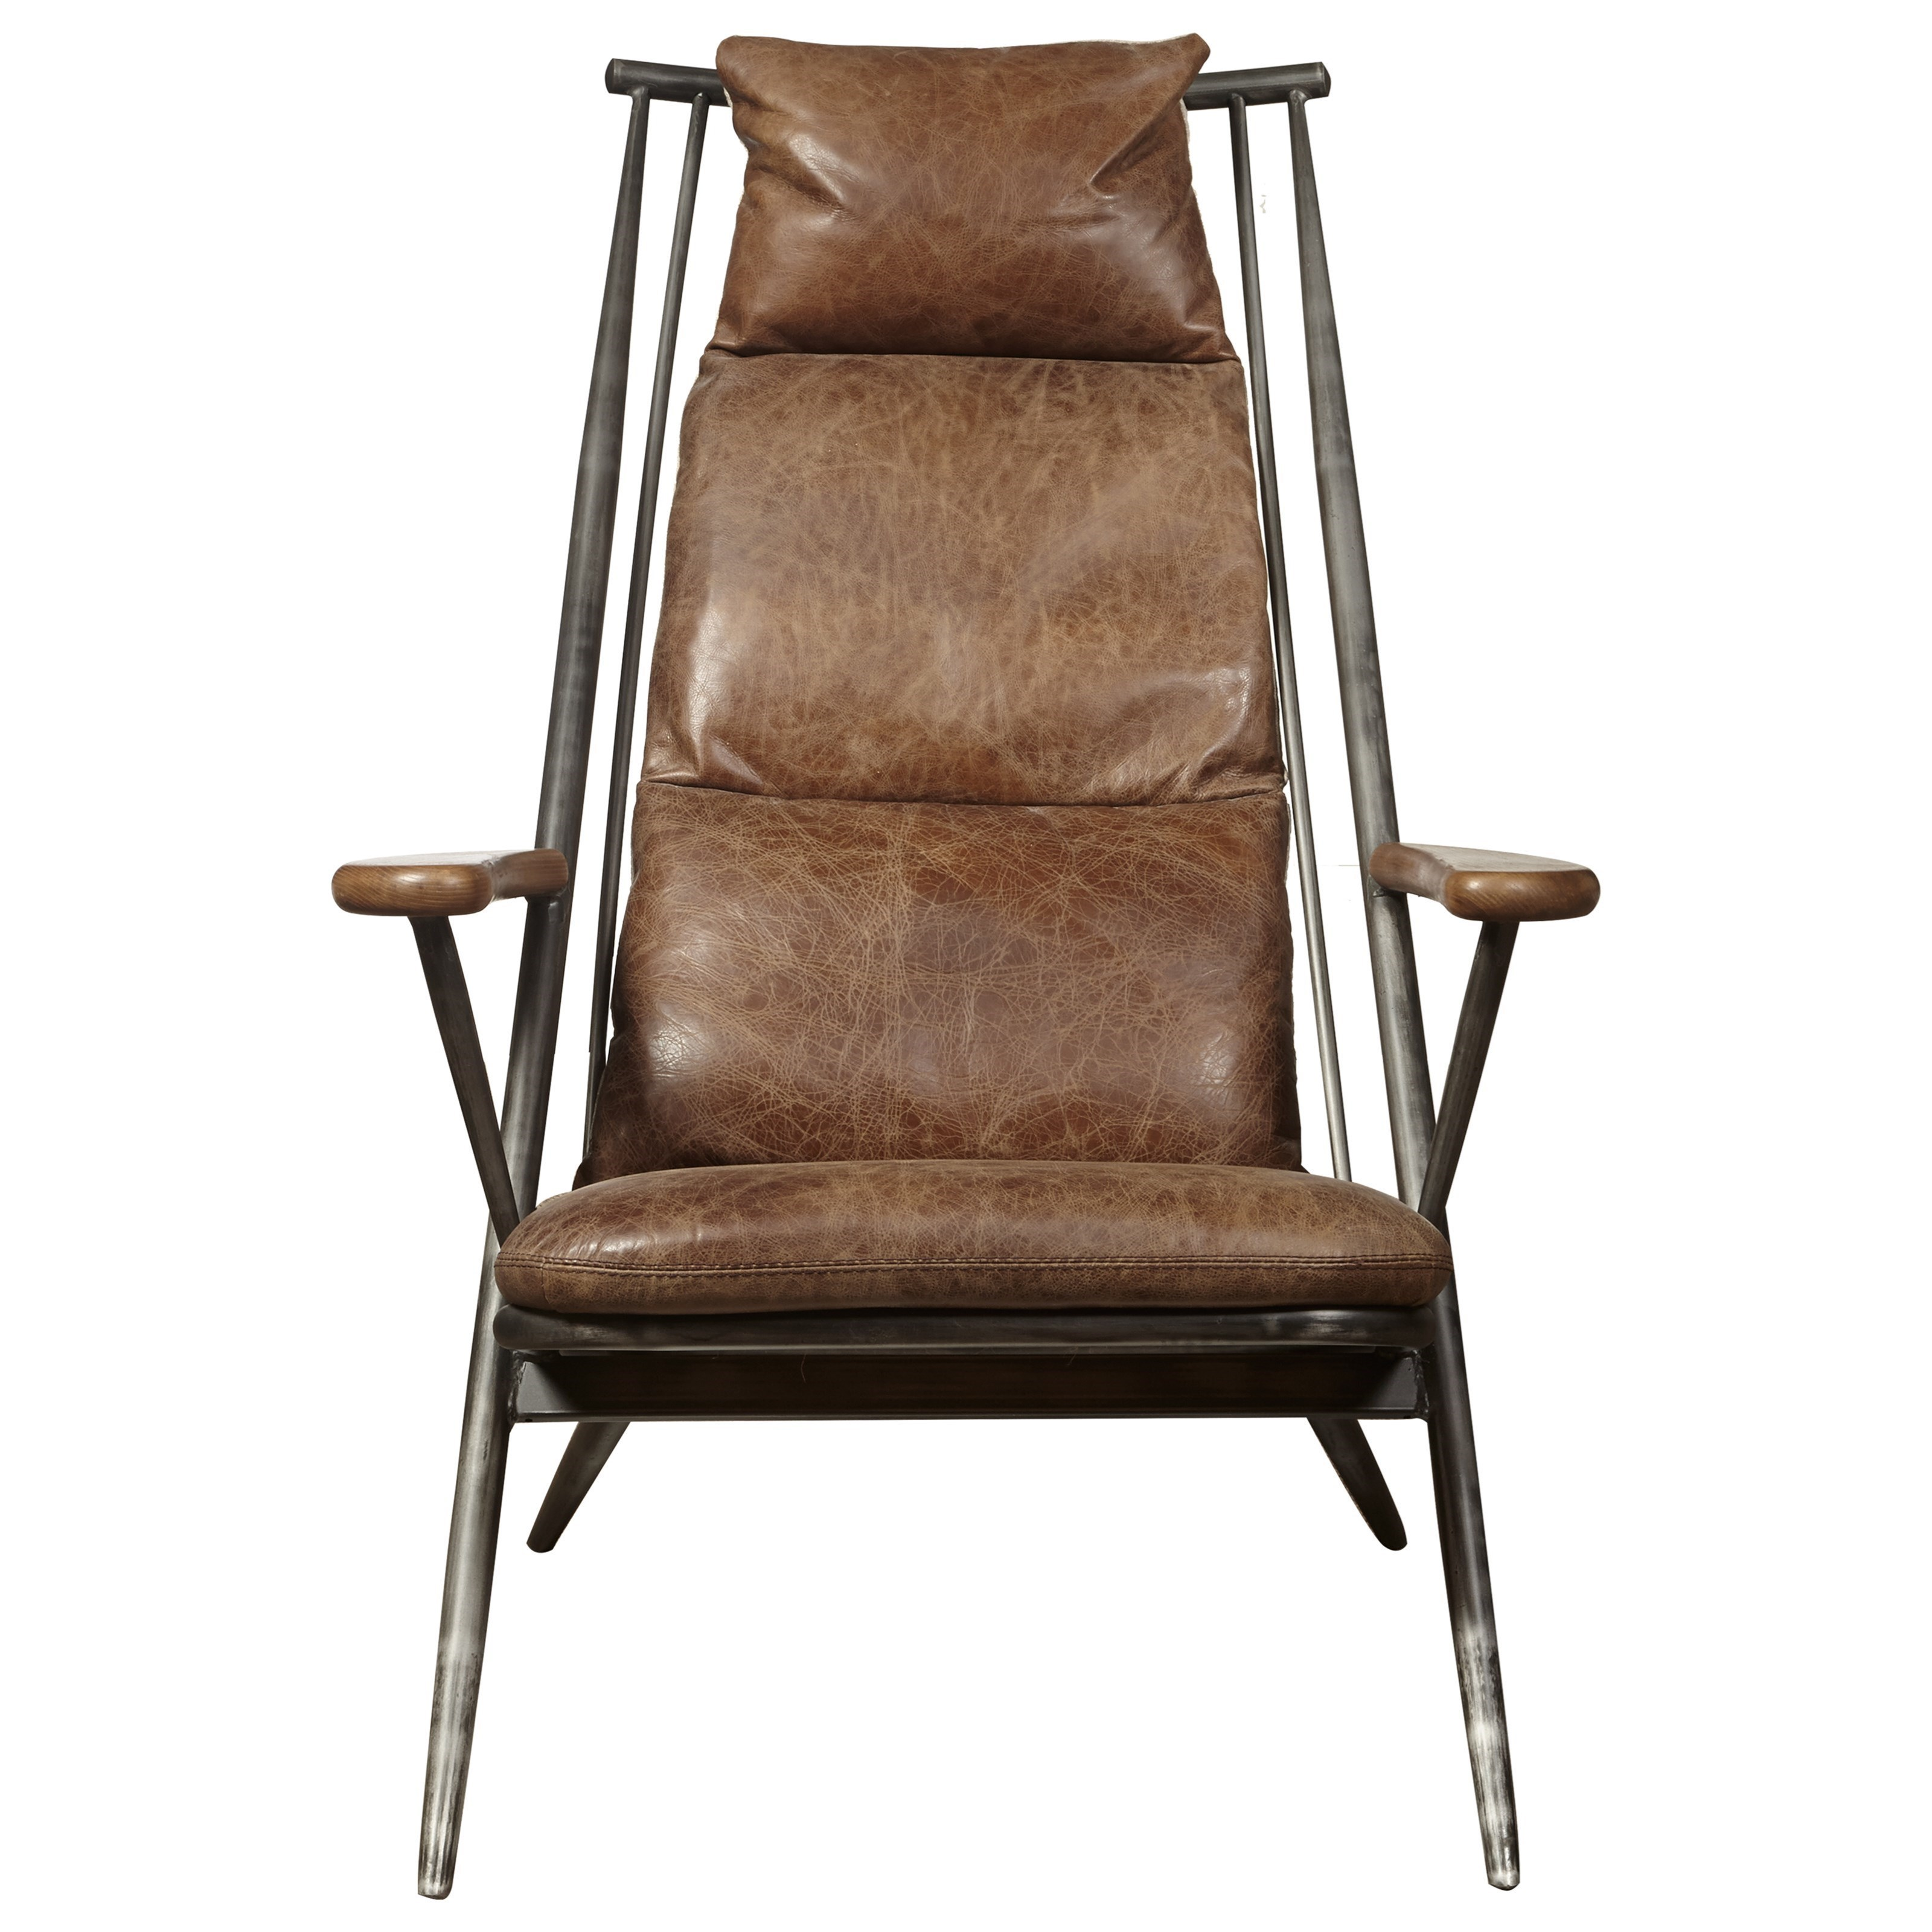 Pulaski Furniture Accent Chairs P006204 Brenna Chair In Chestnut Leather |  John V Schultz Furniture | Upholstered Chairs